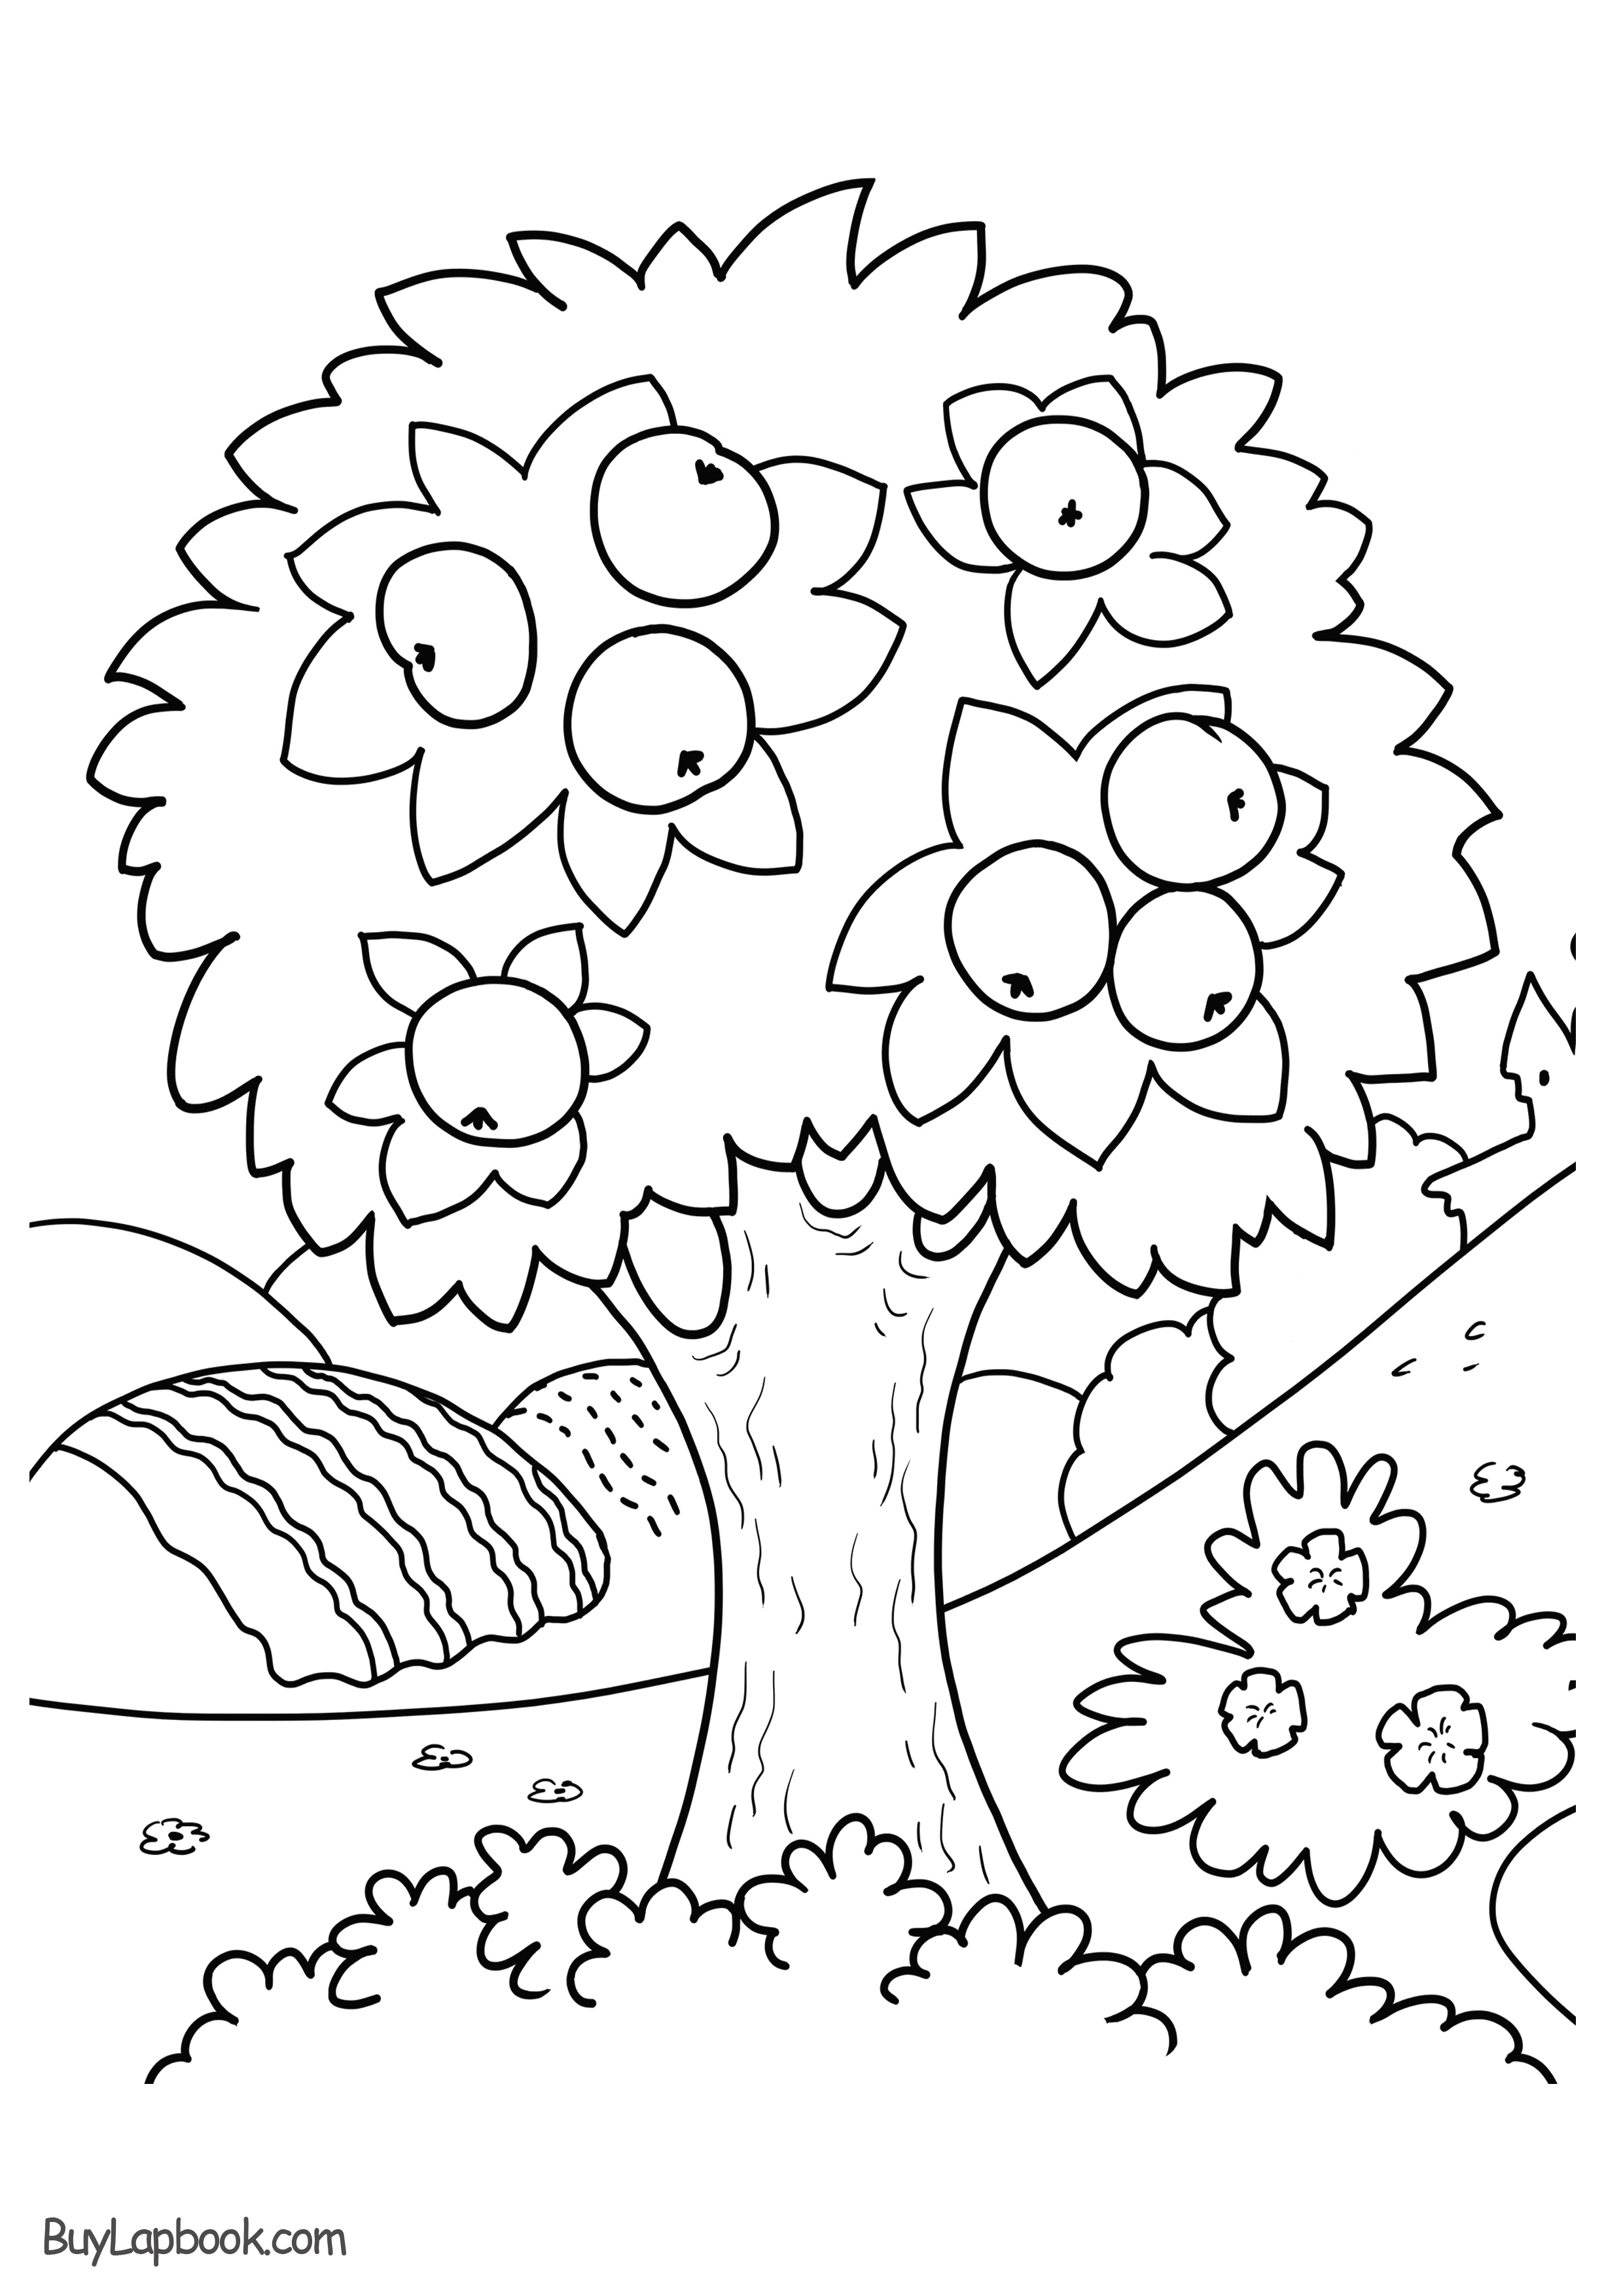 apple tree pictures to color lively apple tree coloring page coloring sheets tree apple to color pictures